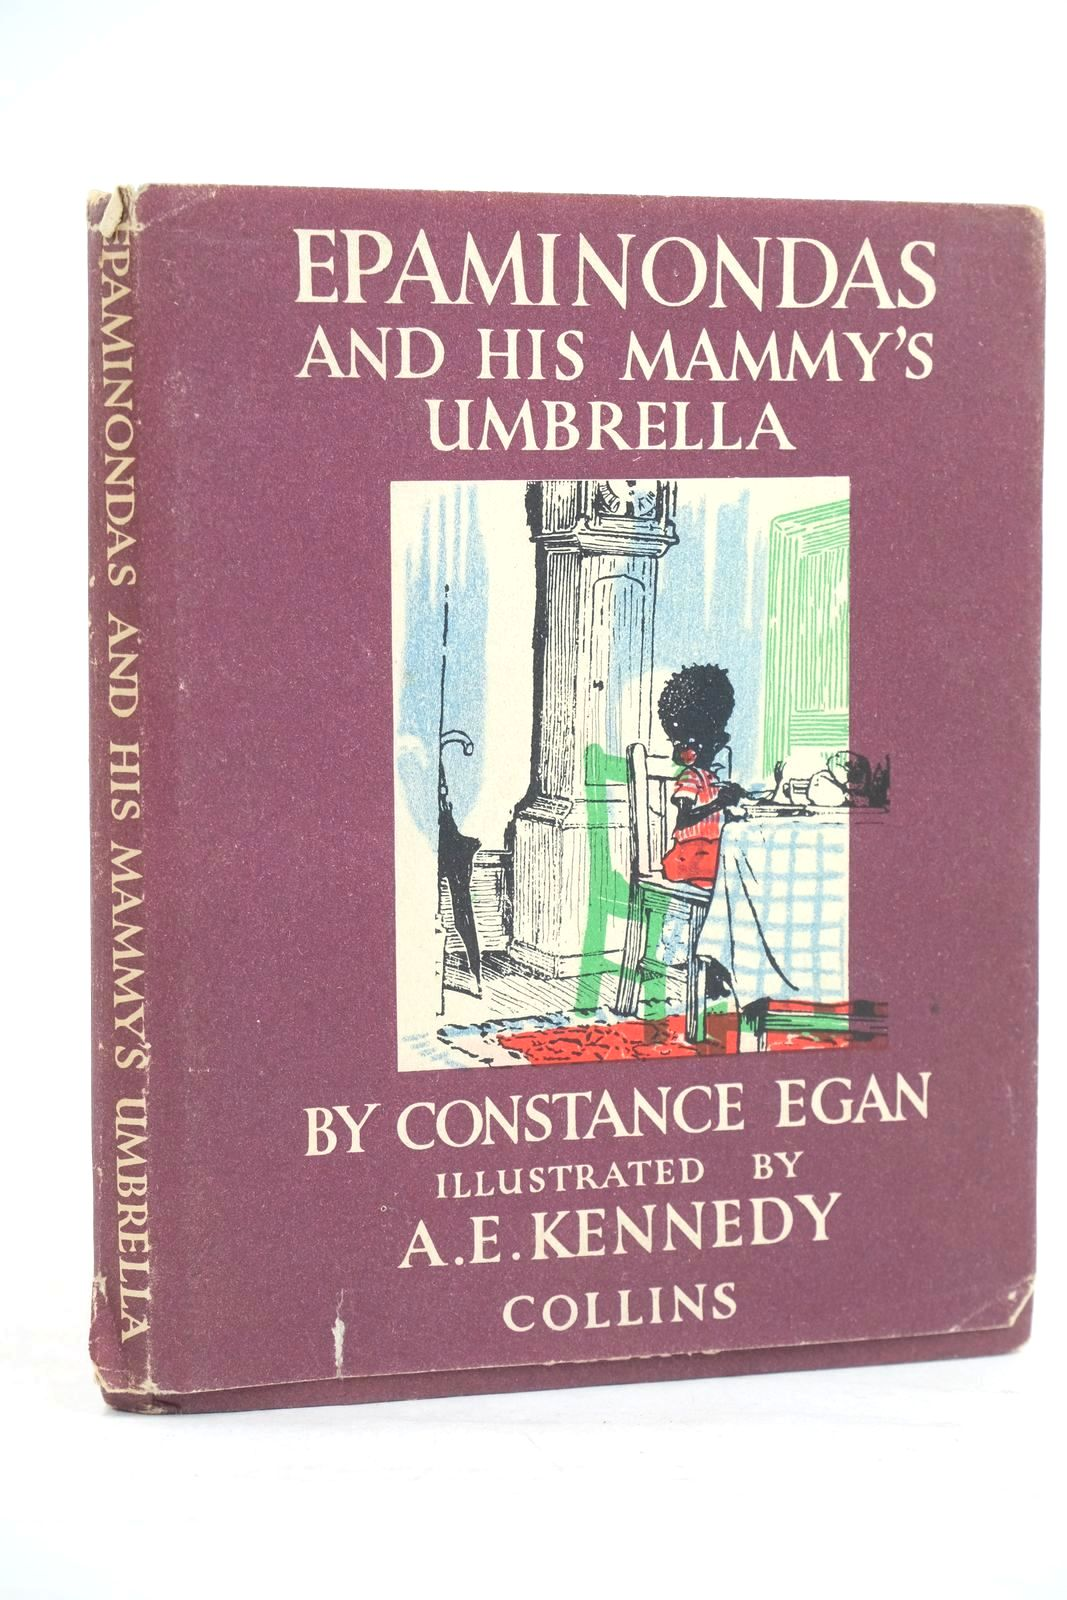 Photo of EPAMINONDAS AND HIS MAMMY'S UMBRELLA written by Egan, Constance illustrated by Kennedy, A.E. published by Collins (STOCK CODE: 1320095)  for sale by Stella & Rose's Books